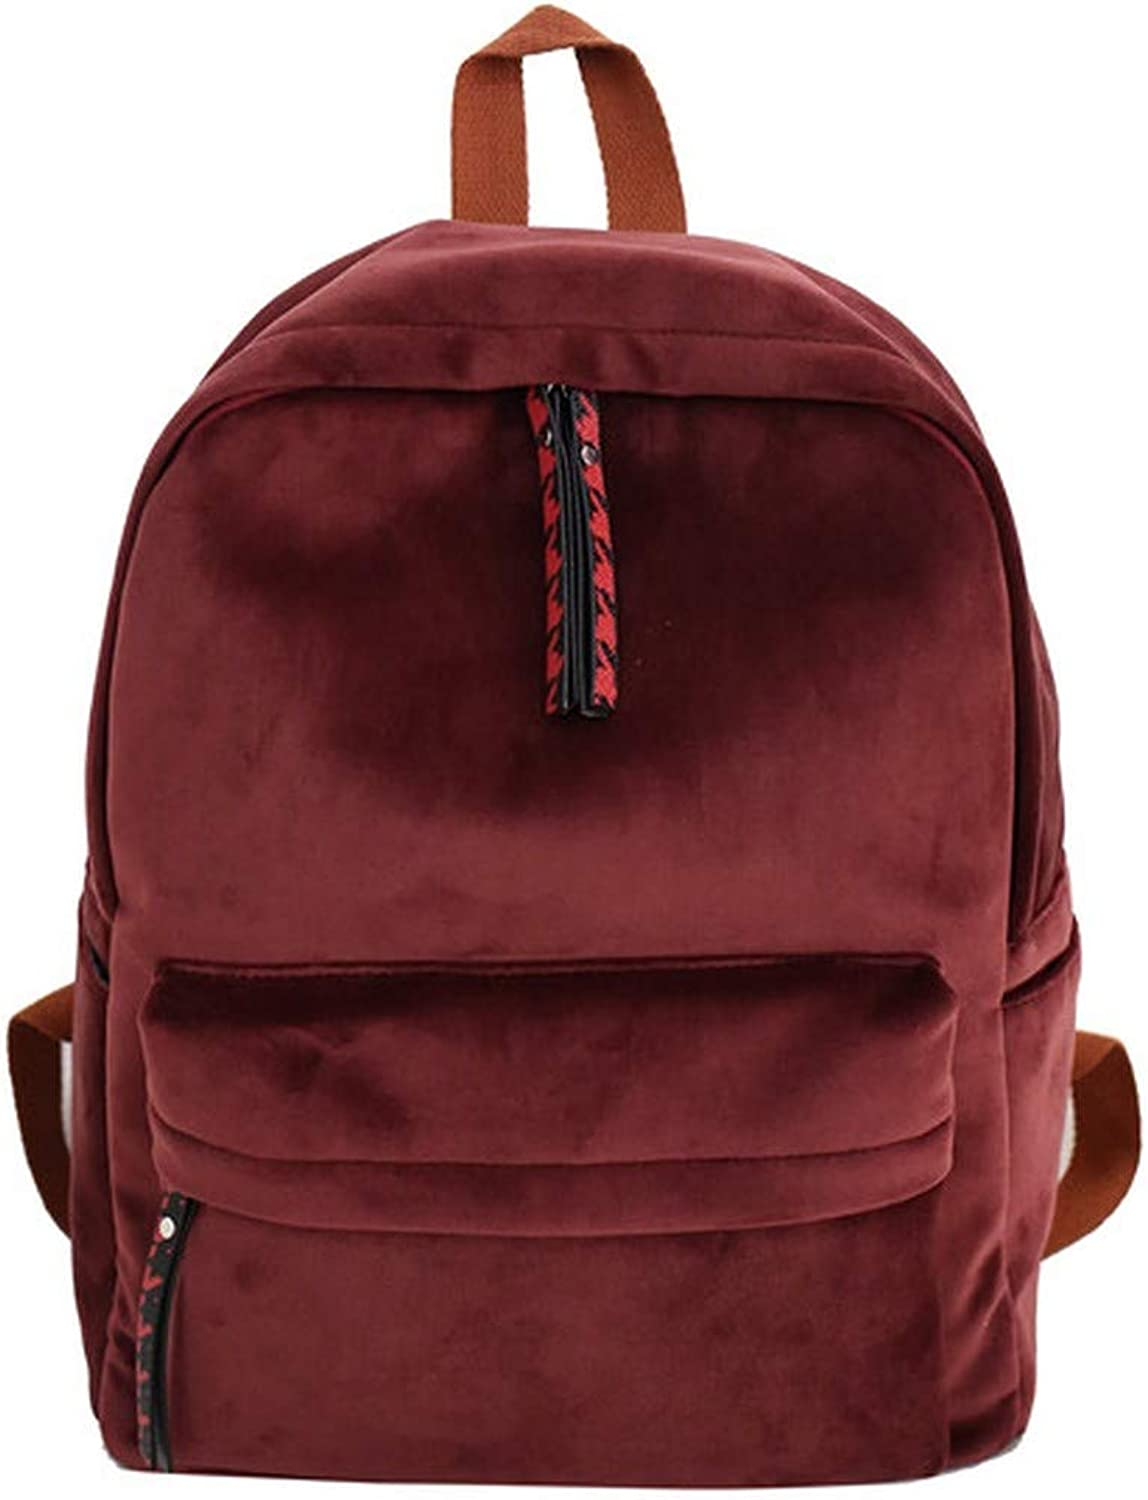 Soft Suede Women Backpack...